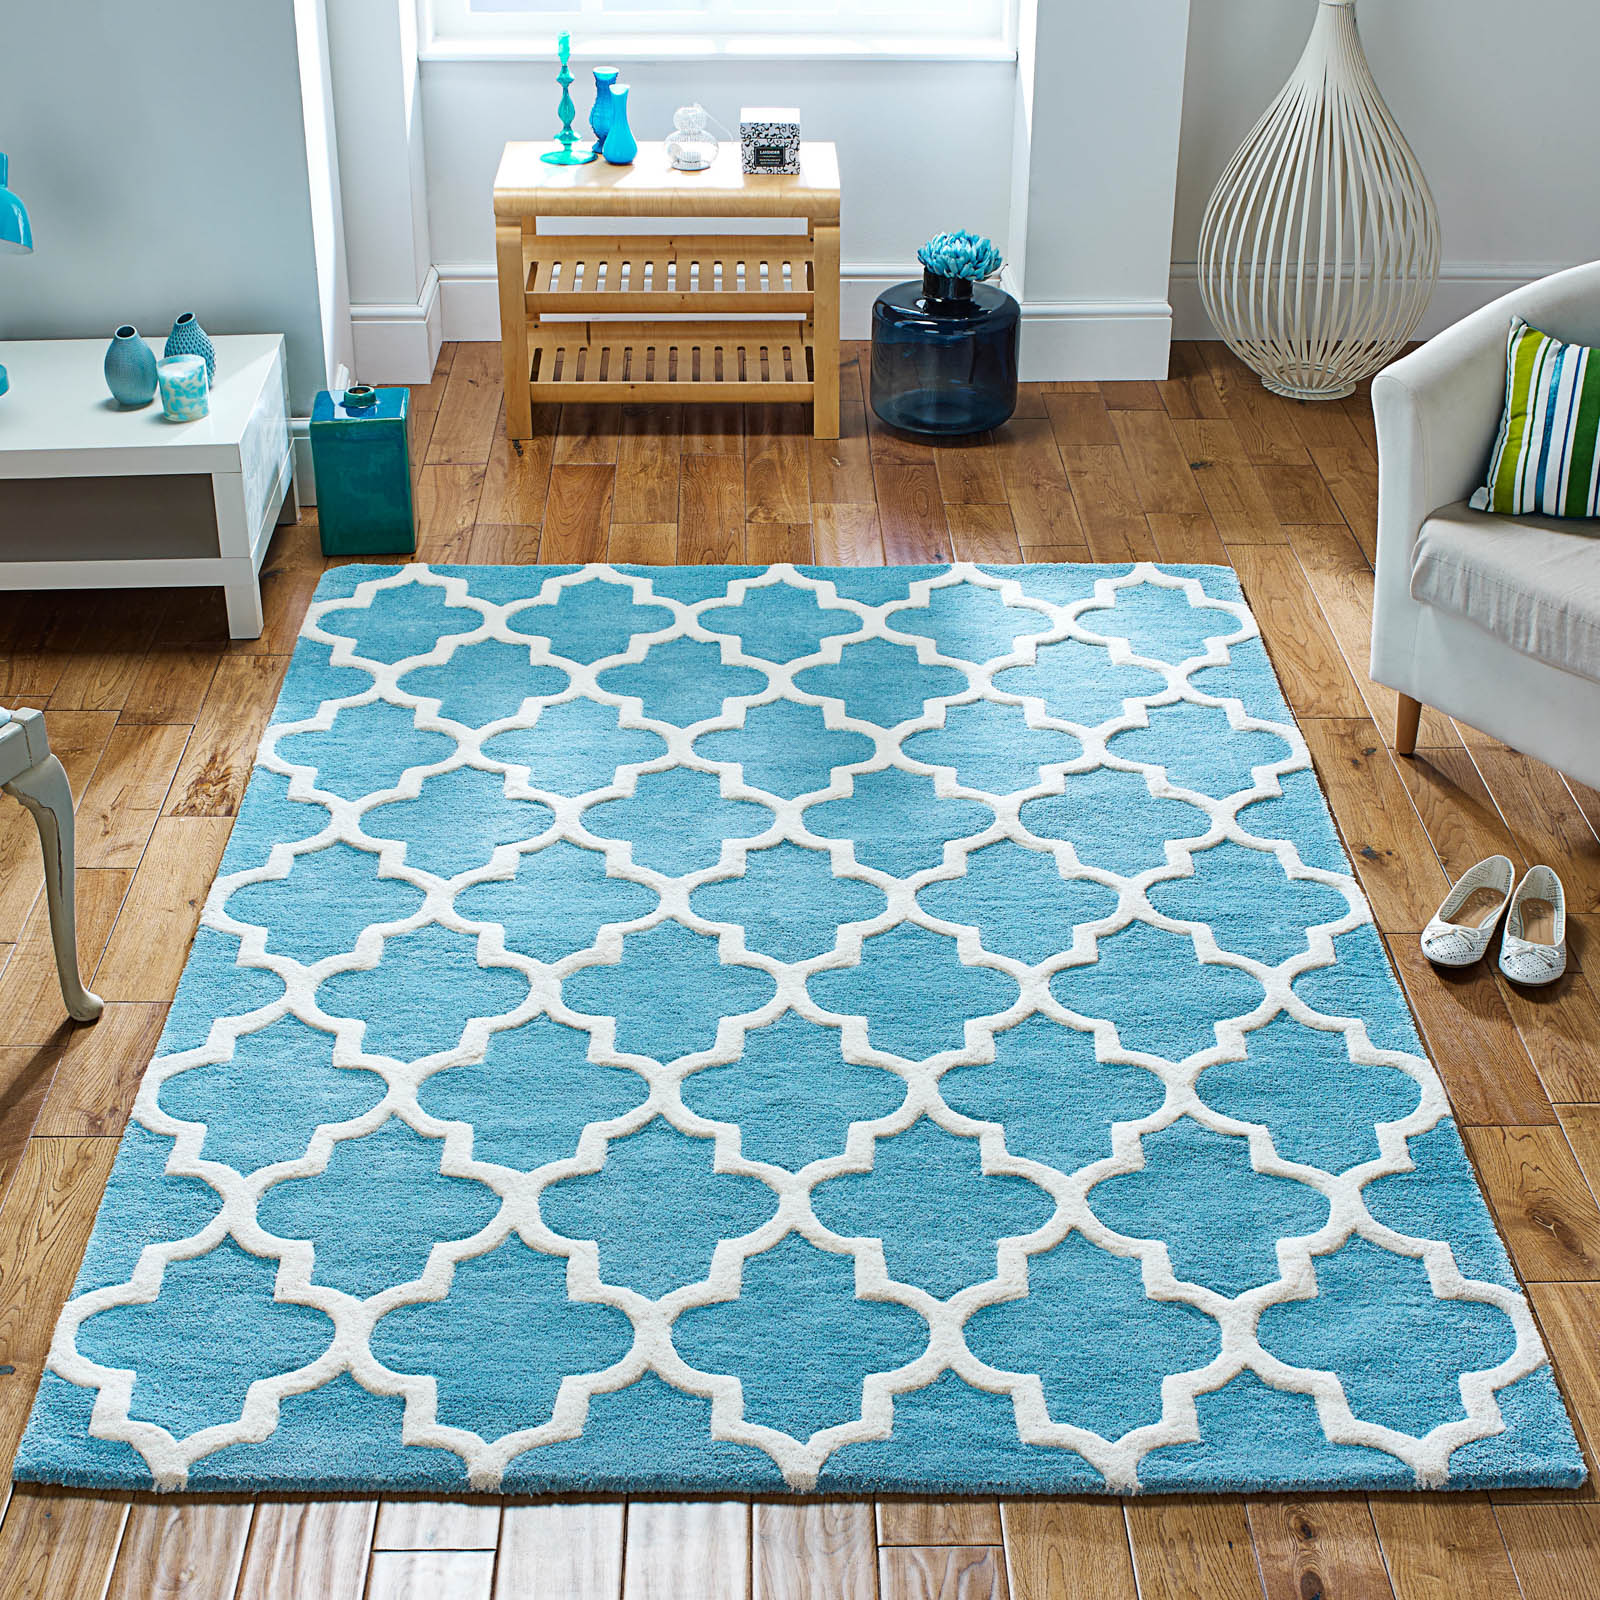 Arabesque Rug In Light Teal